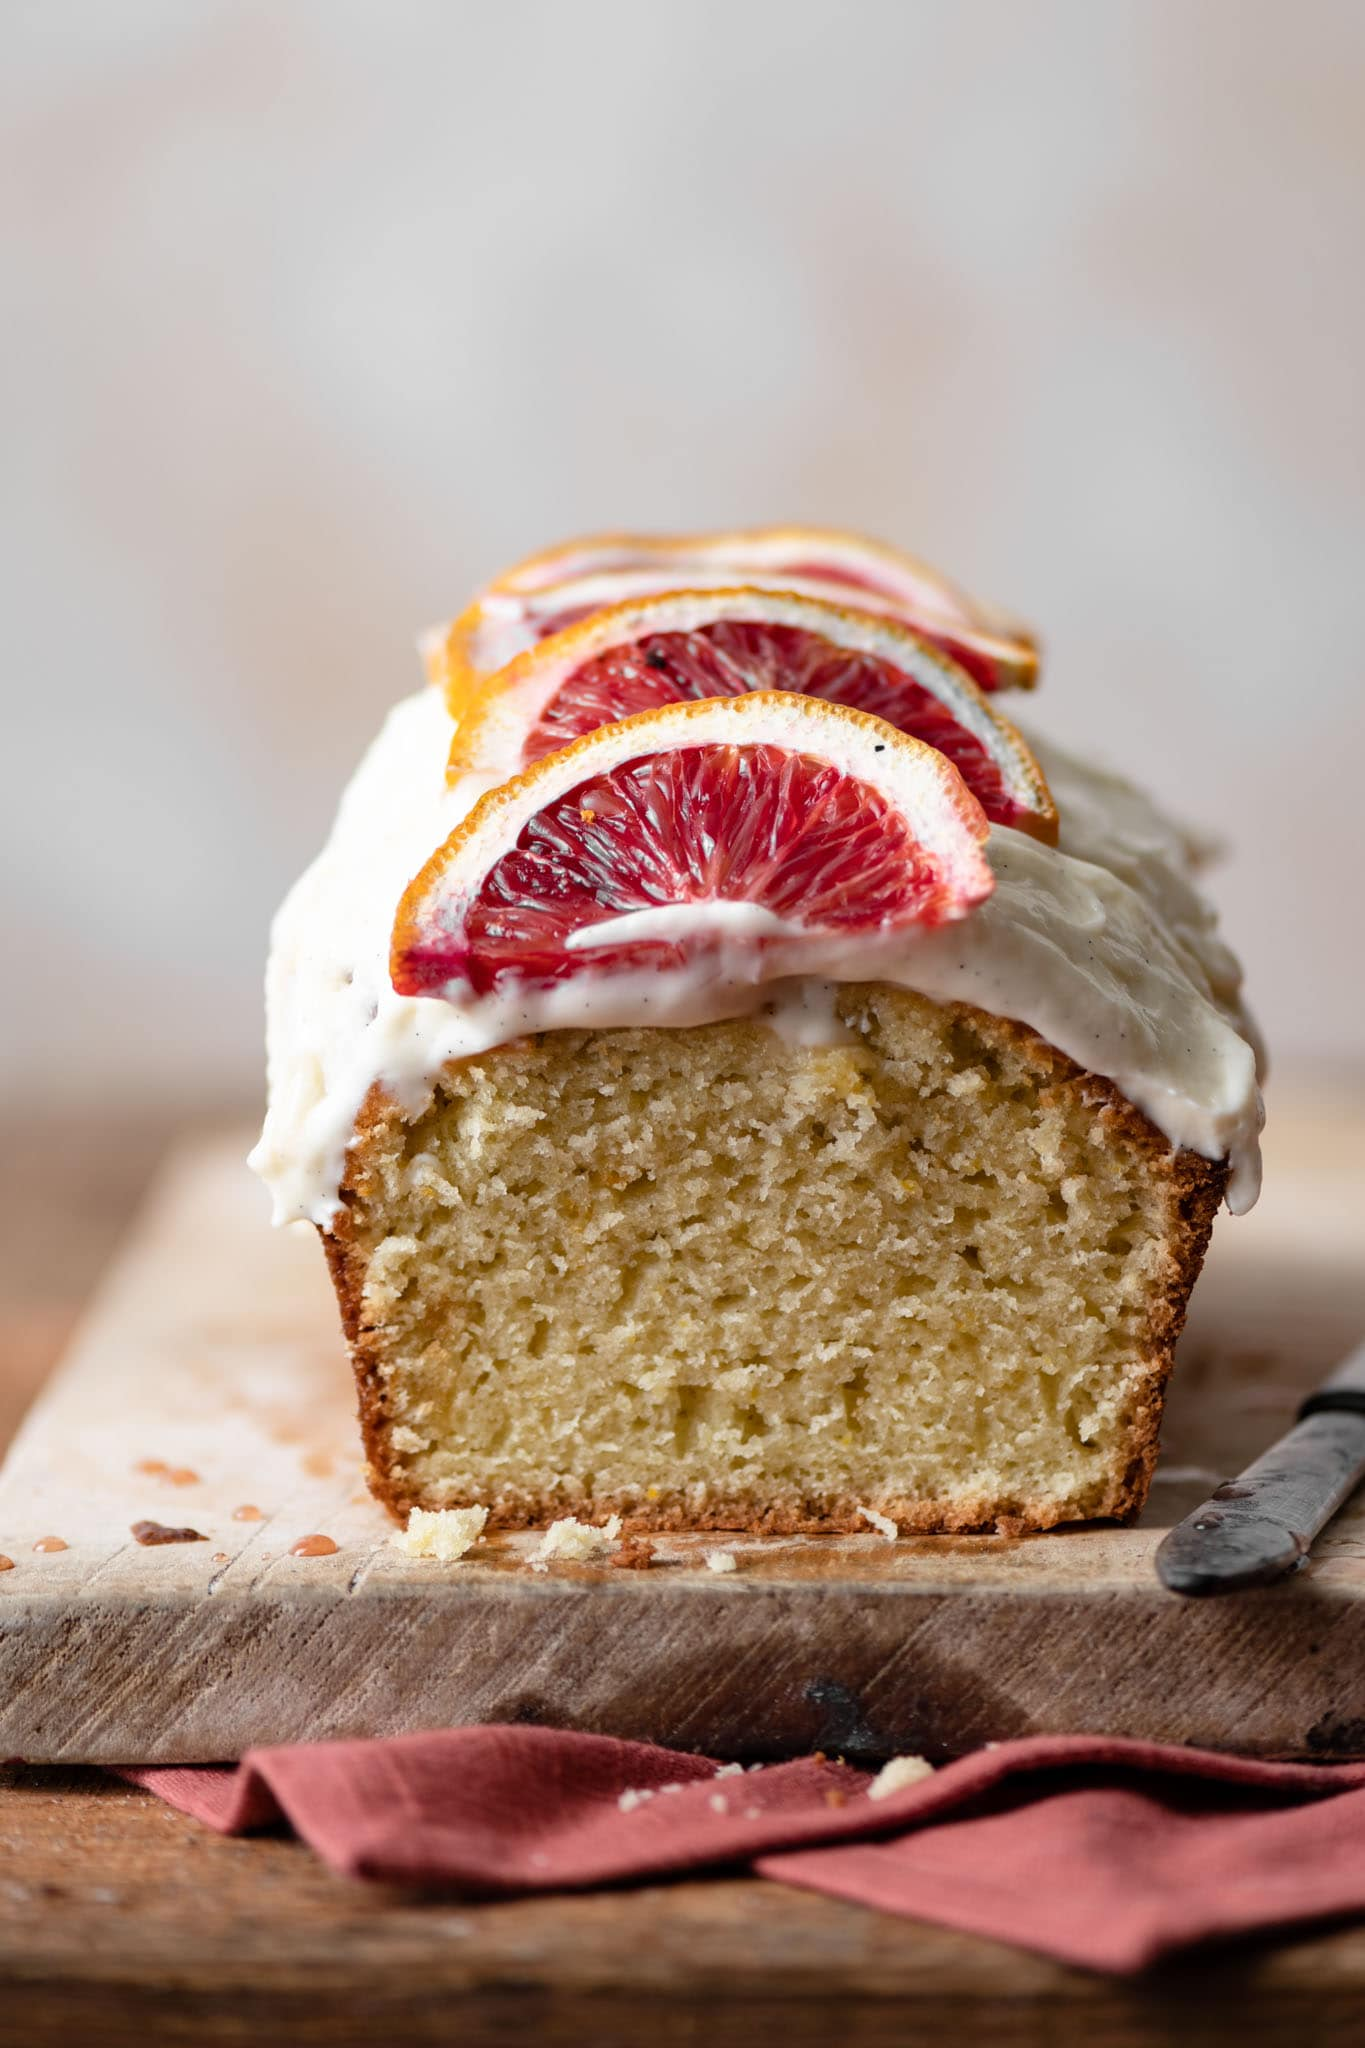 Recipe for Olive Oil cake made with blood oranges.